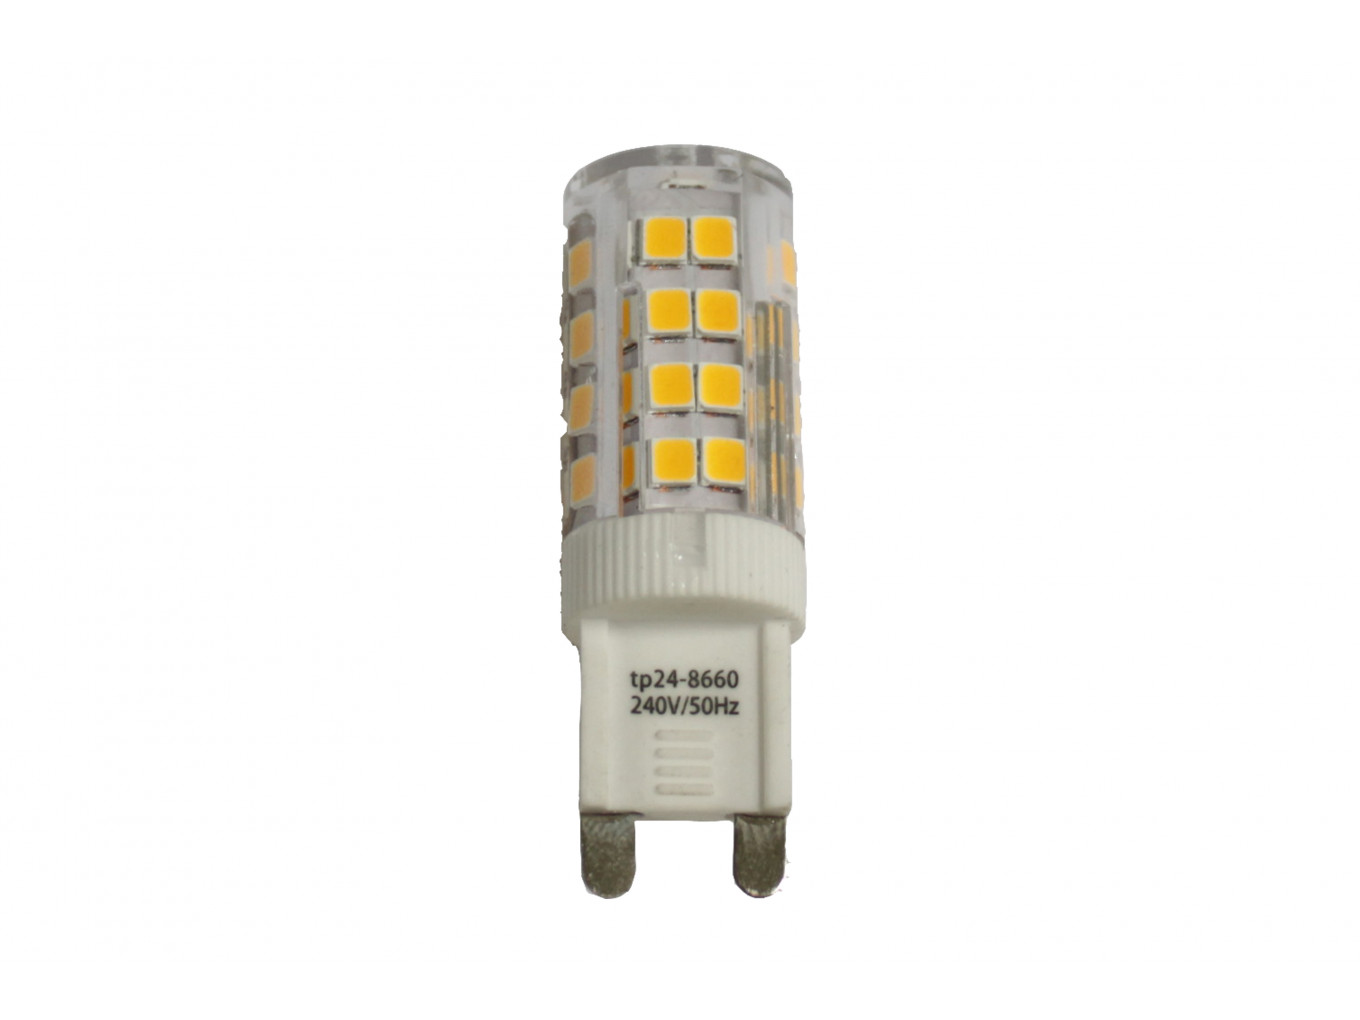 G9 Led Test 3w G9 Led Silicon Lamp Led Lamps Light Bulbs All